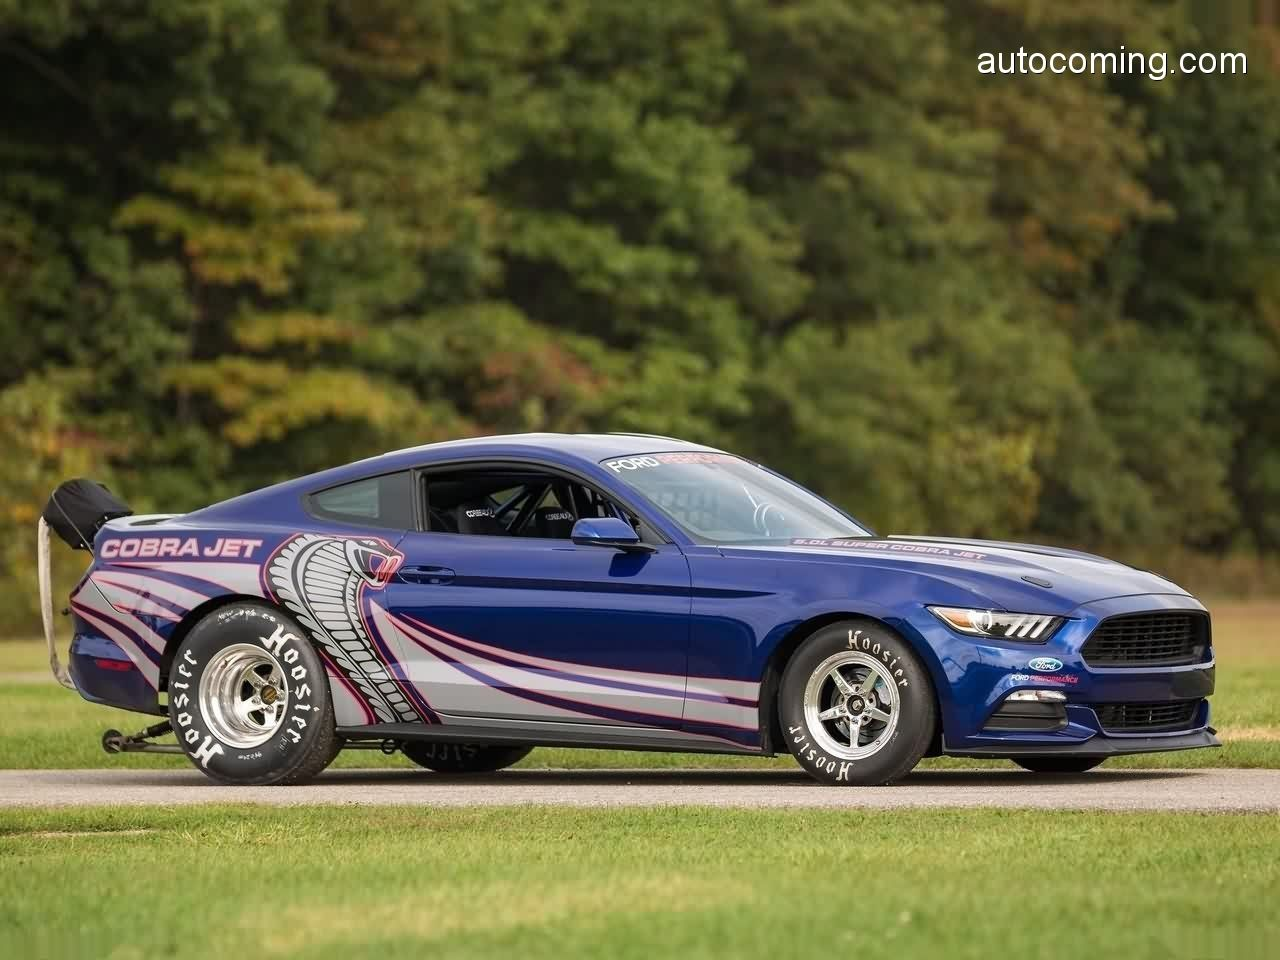 Ford Mustang Cobra Jet 2016 Mustang Mustang Cars Ford